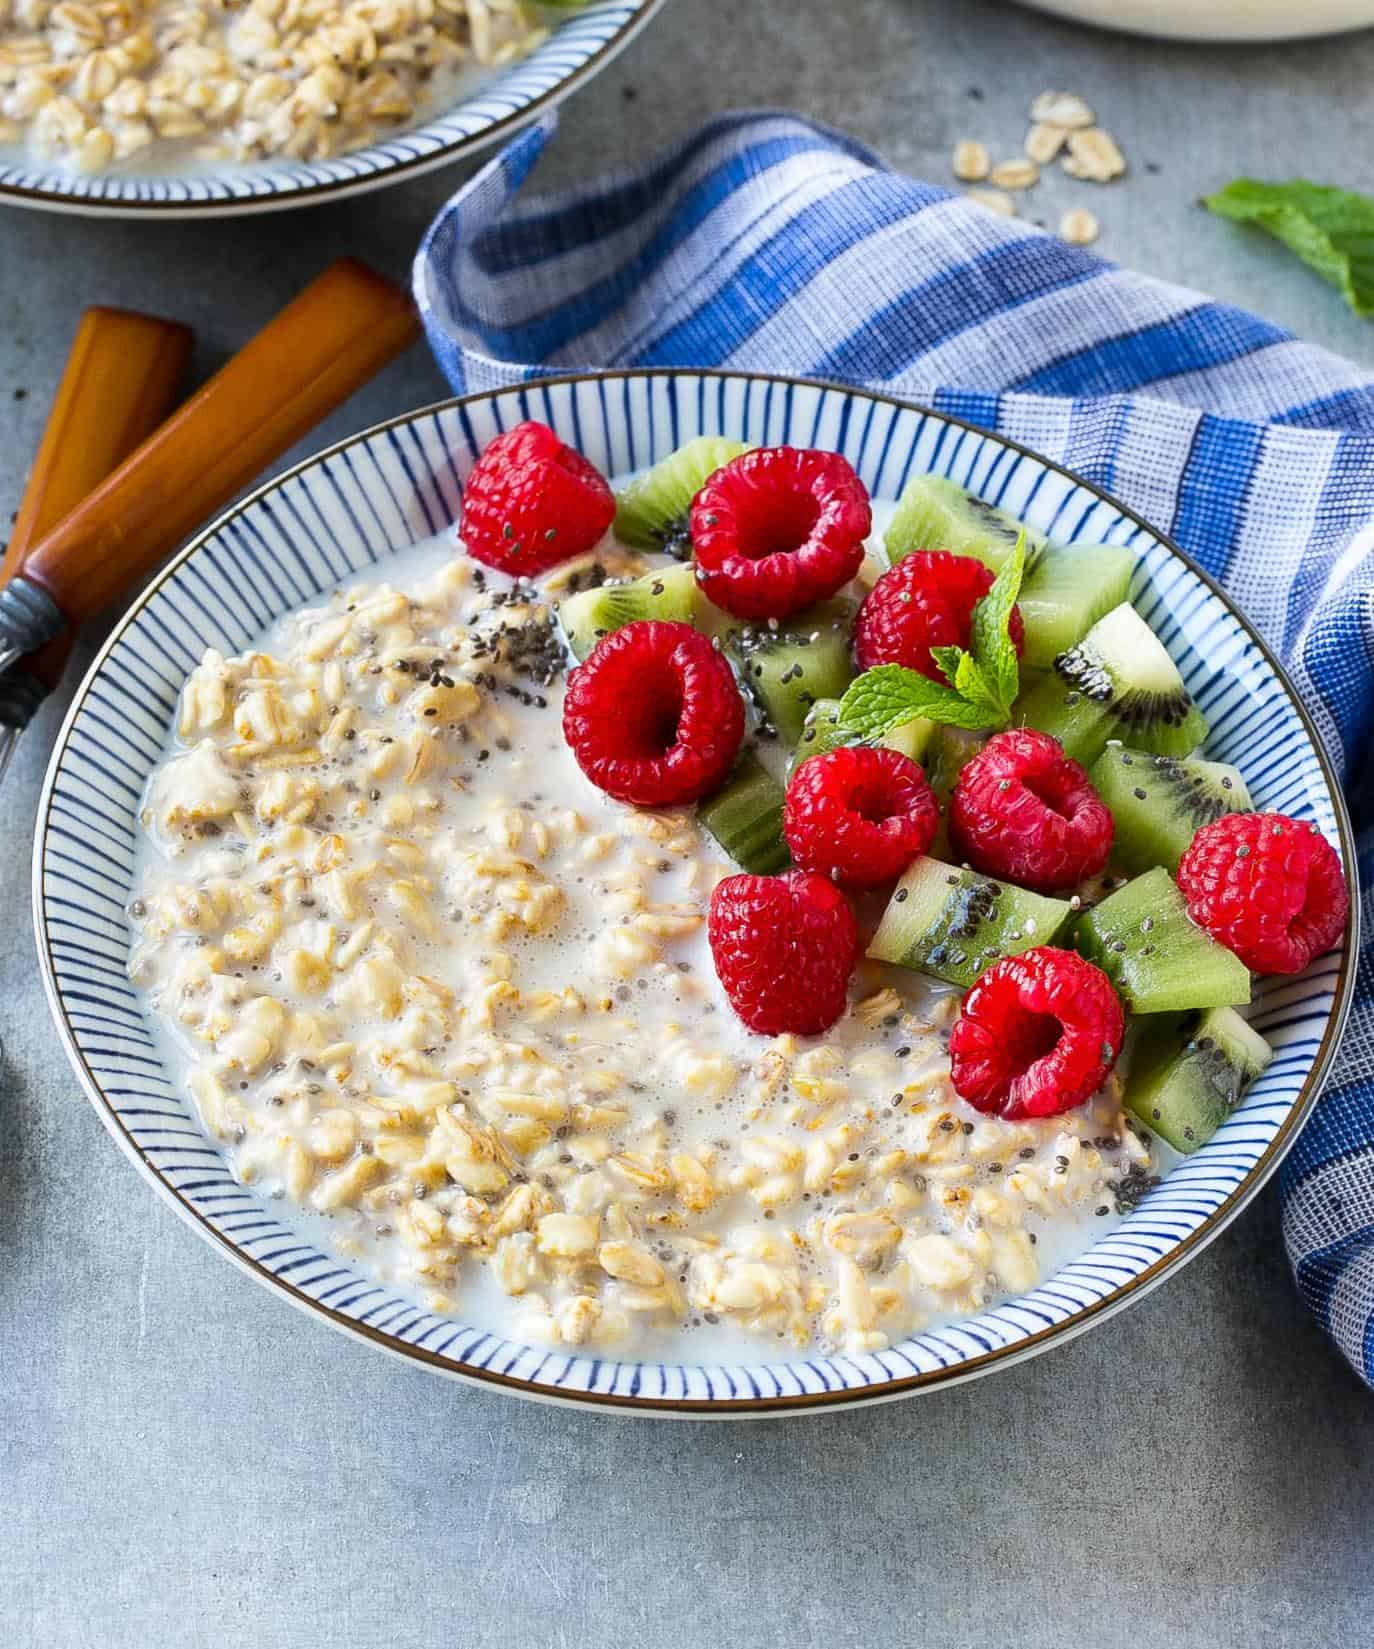 oats and fruits